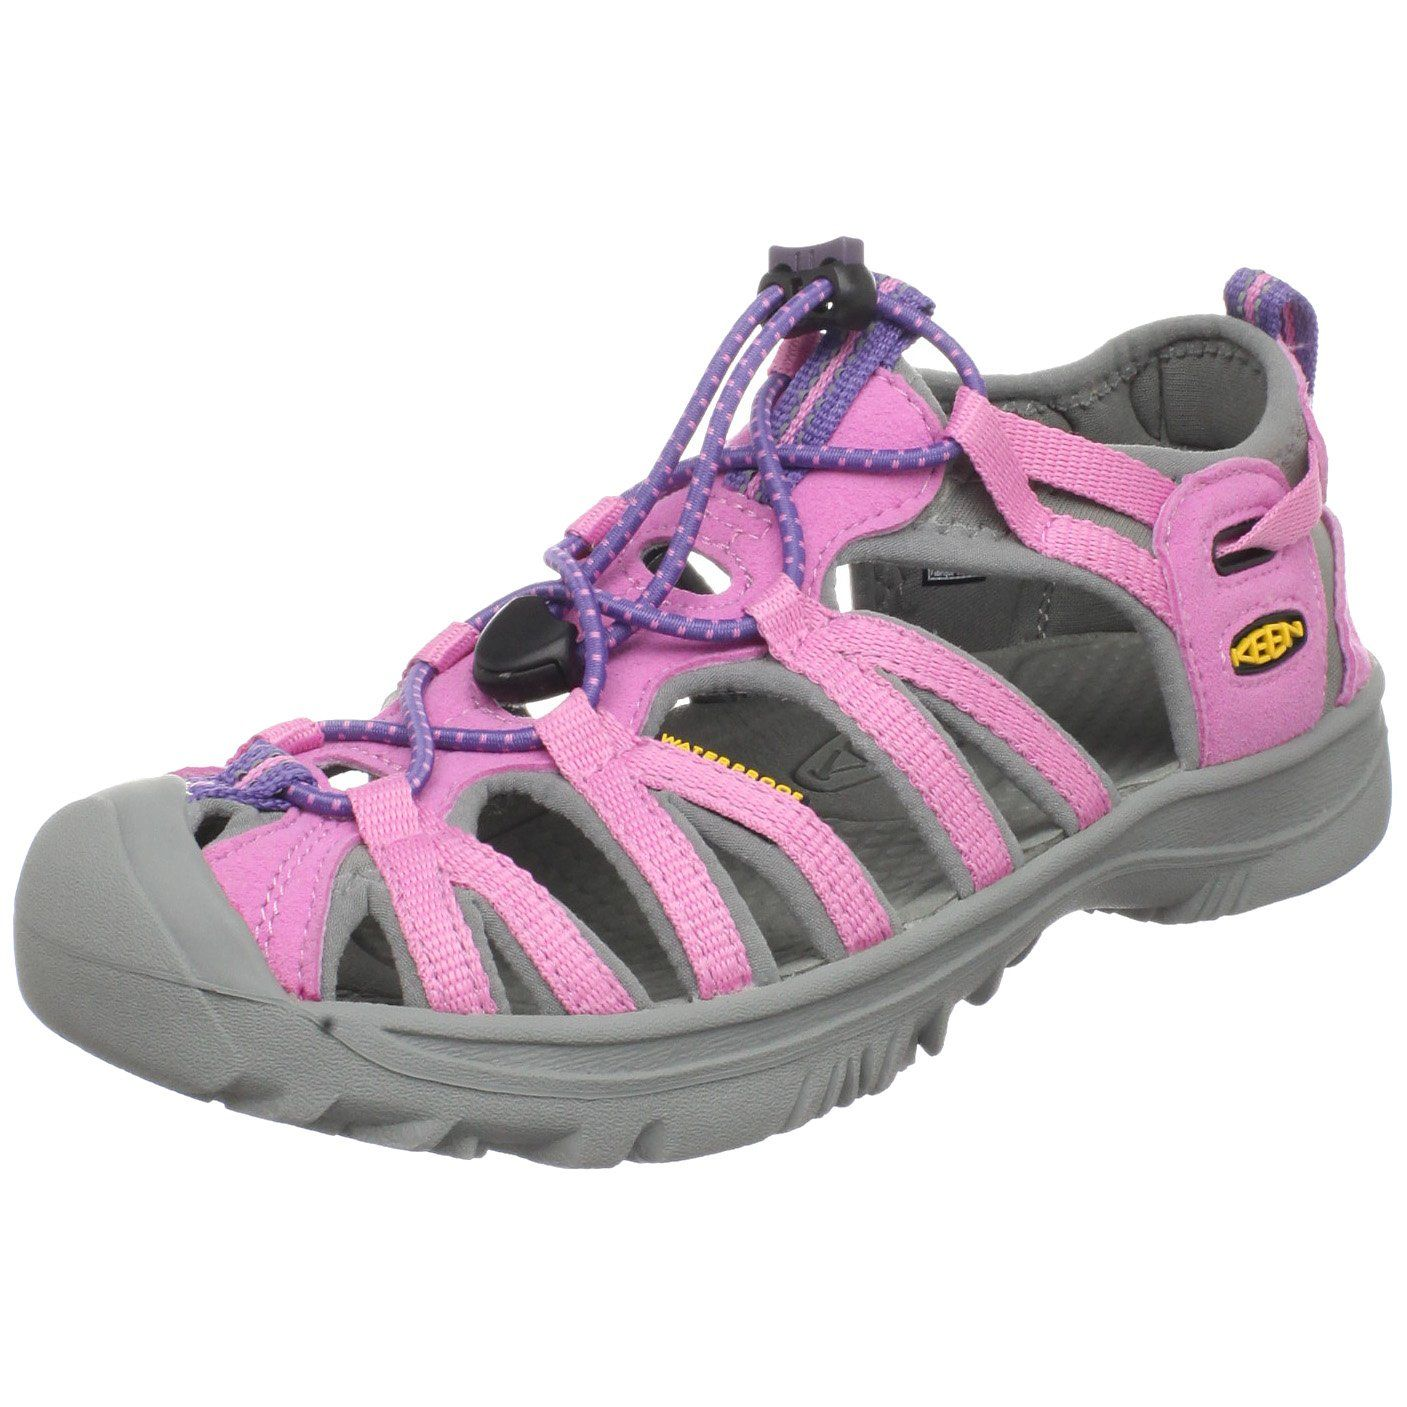 985200d59e29 KEEN Whisper Hook and Loop Sandal (Toddler Little Kid) The WHISPER sport  sandal will become an instant favourite for your active little ones!